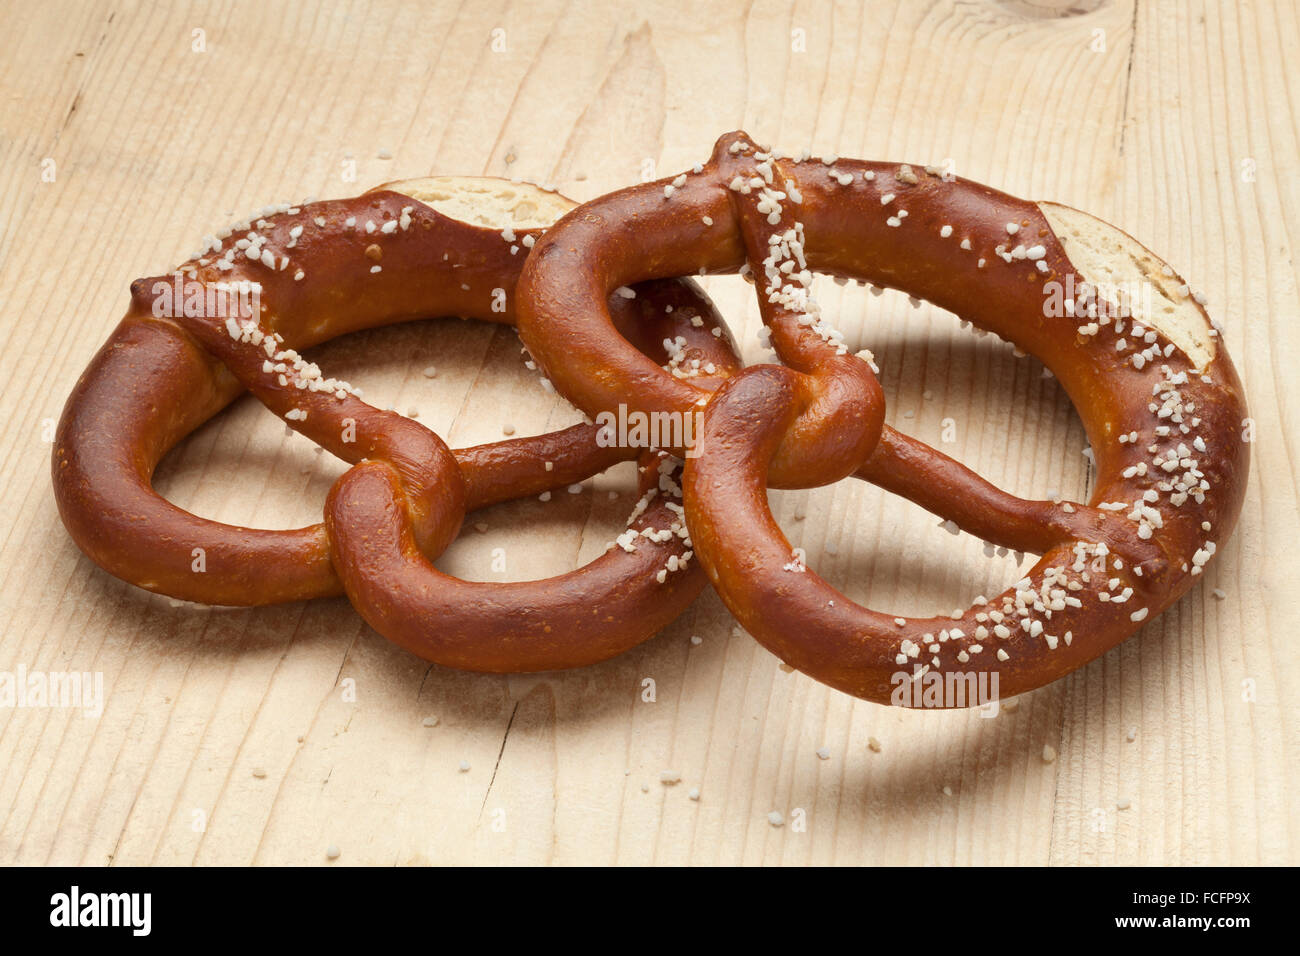 Two fresh soft pretzels with salt - Stock Image